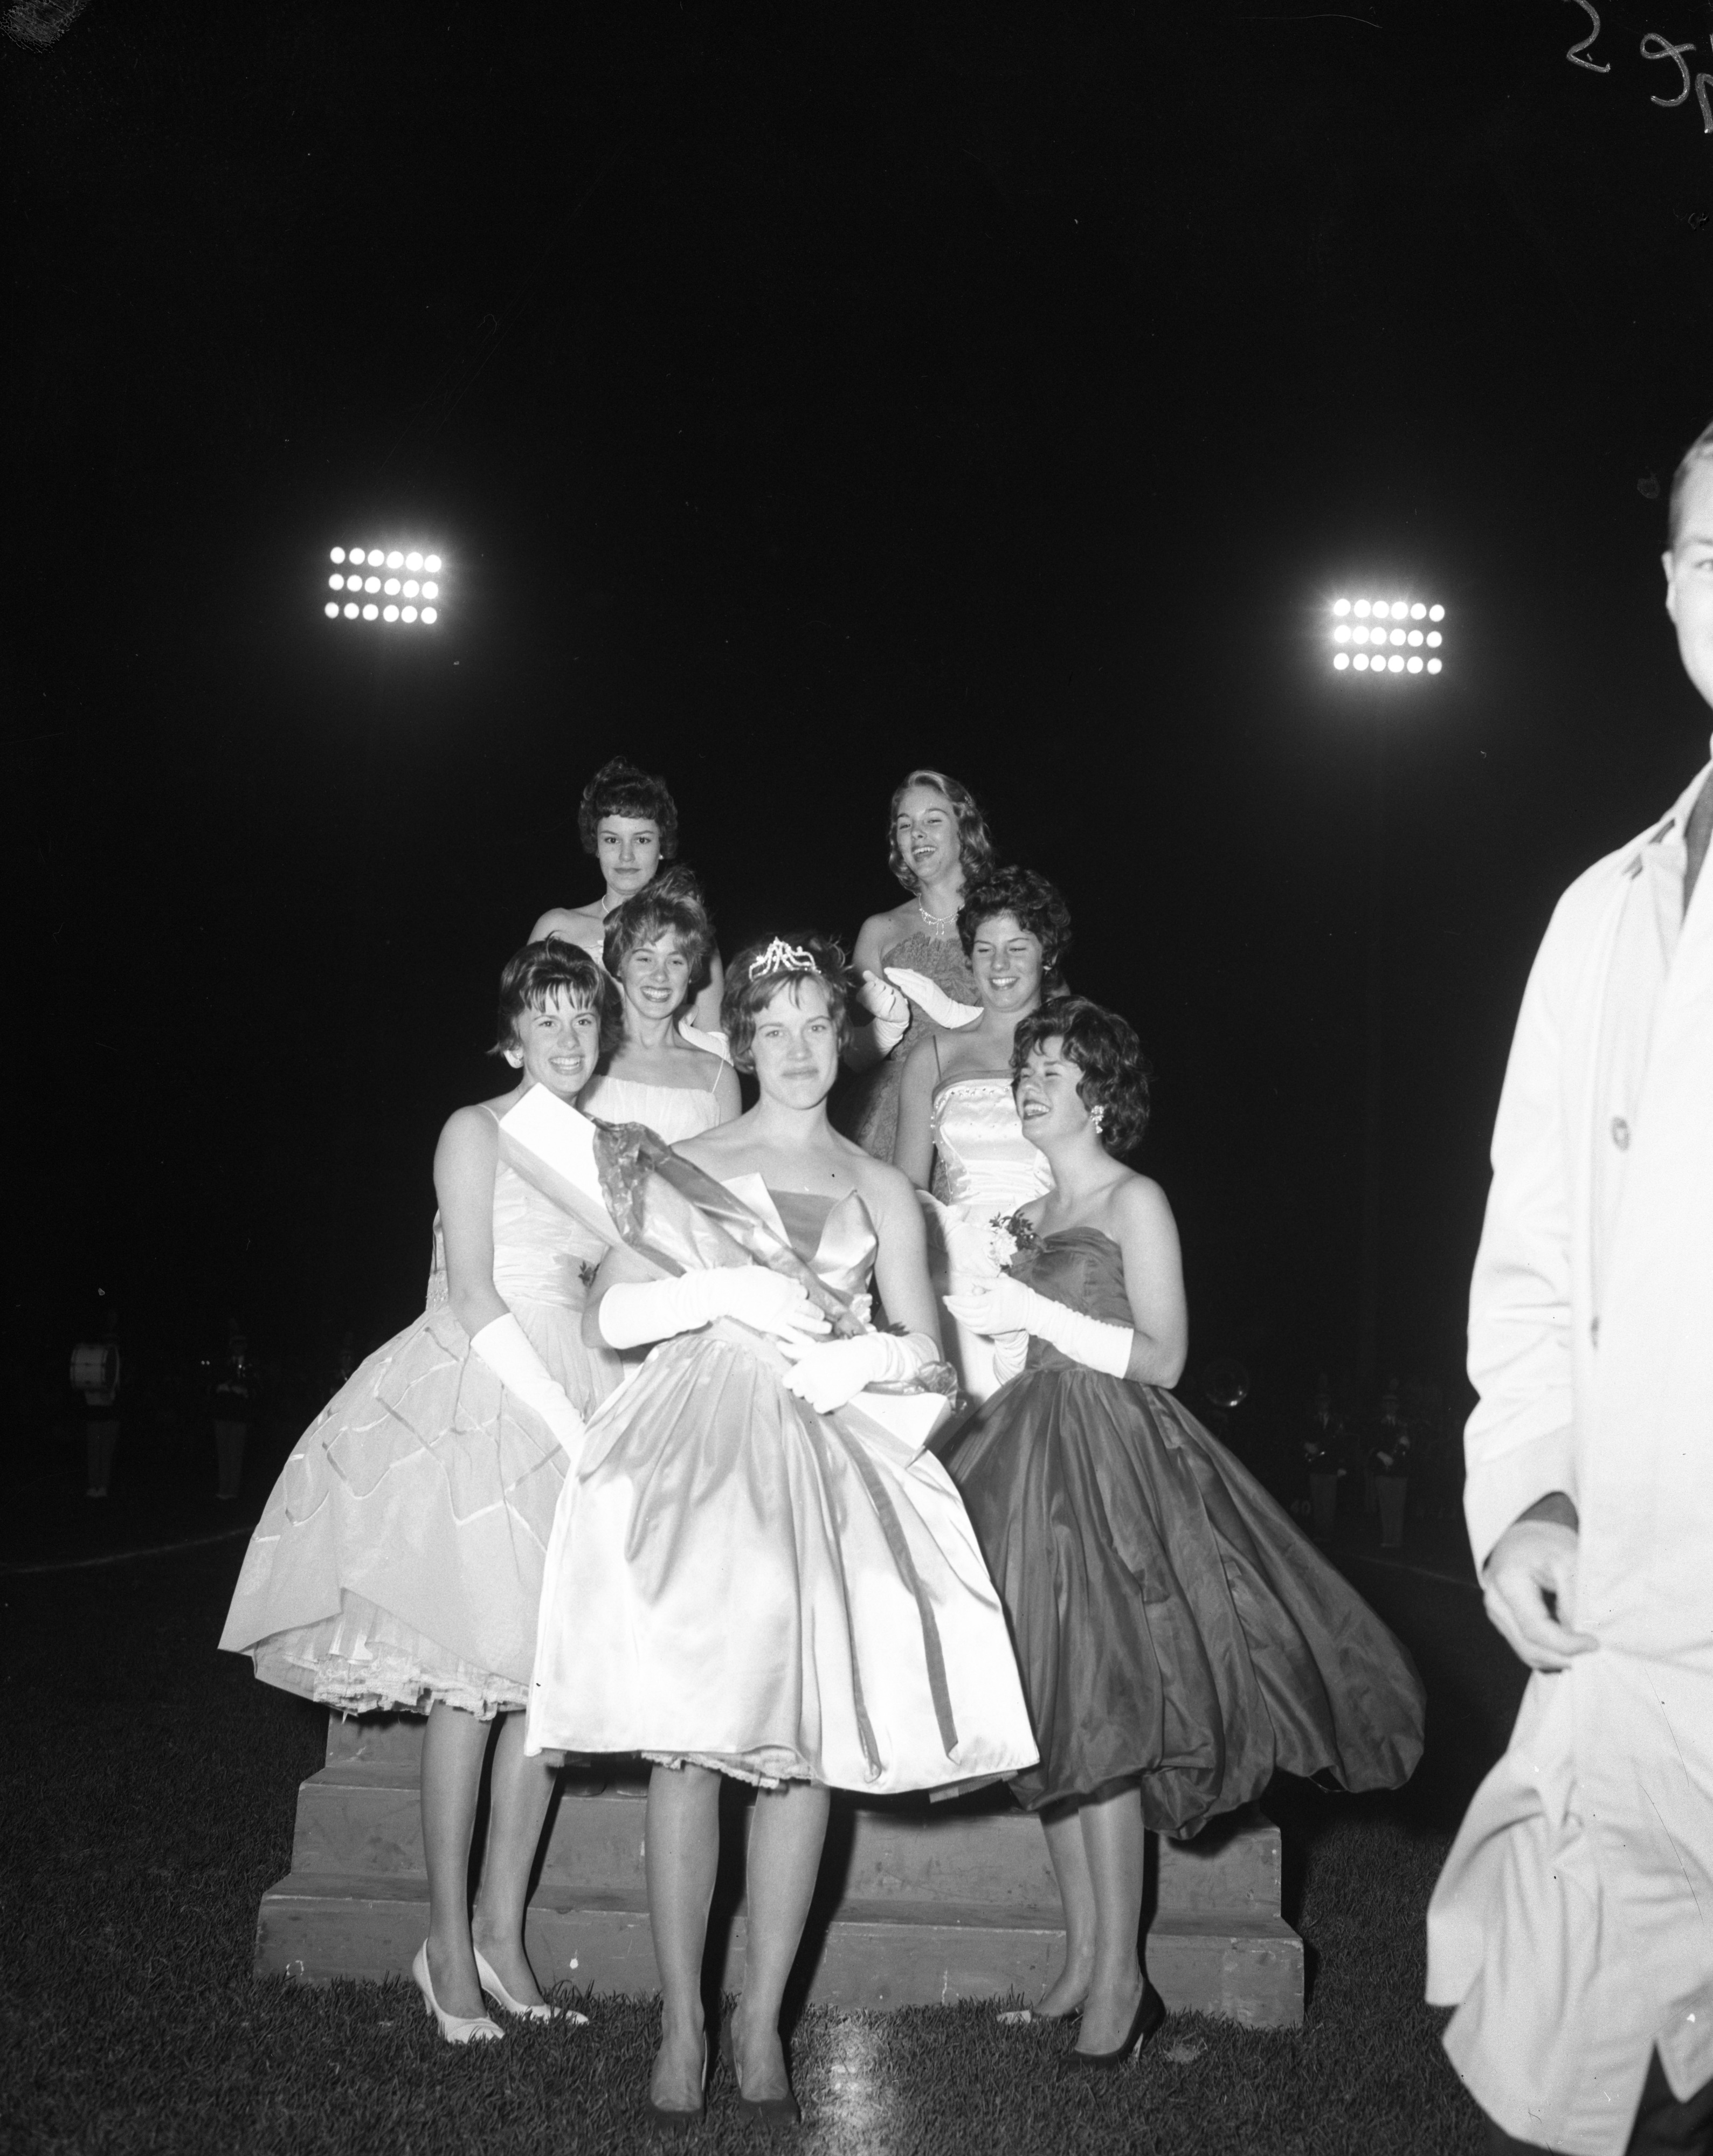 Pam Hogan, Ann Arbor High School Homecoming Queen, and Her Court, October 1961 image